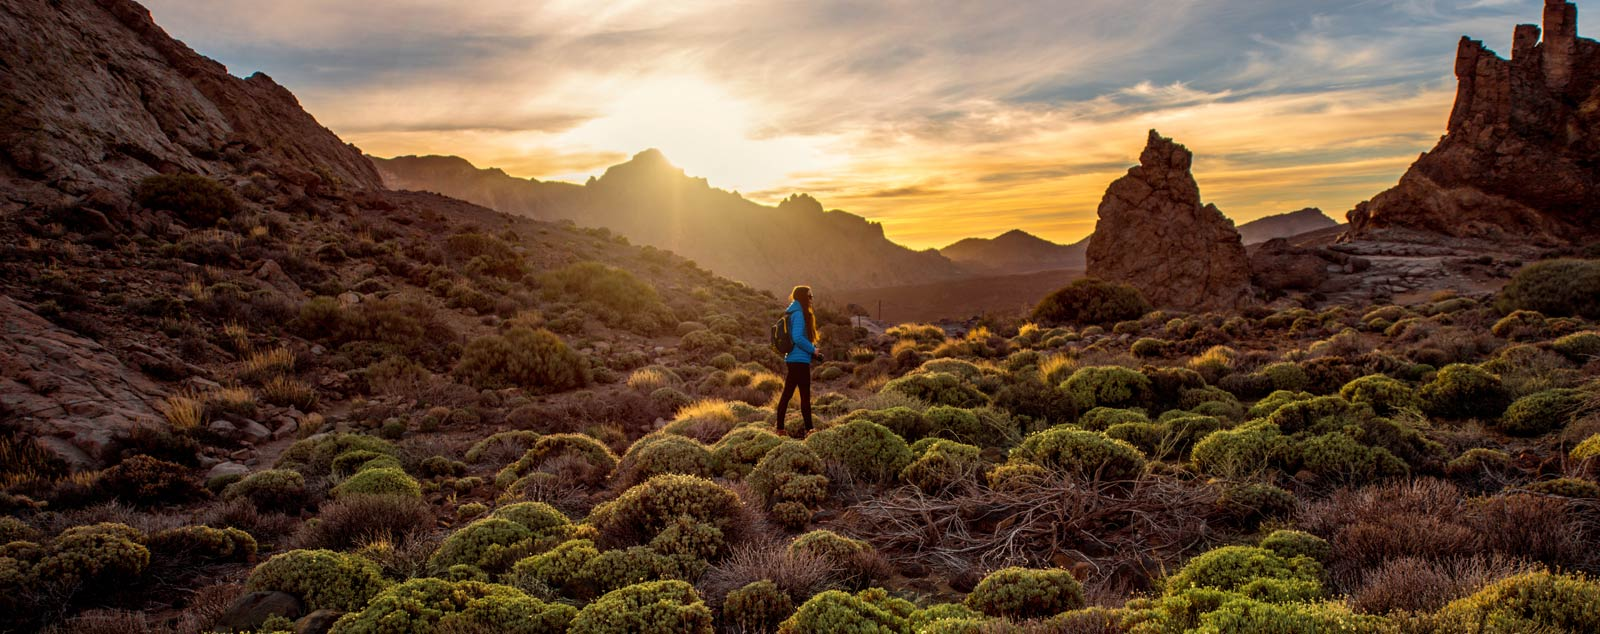 Person in blue jacket stood in tufts of green flora at the bottom of a valley in Tenerife. Sun is setting behind the brown valley rocks.